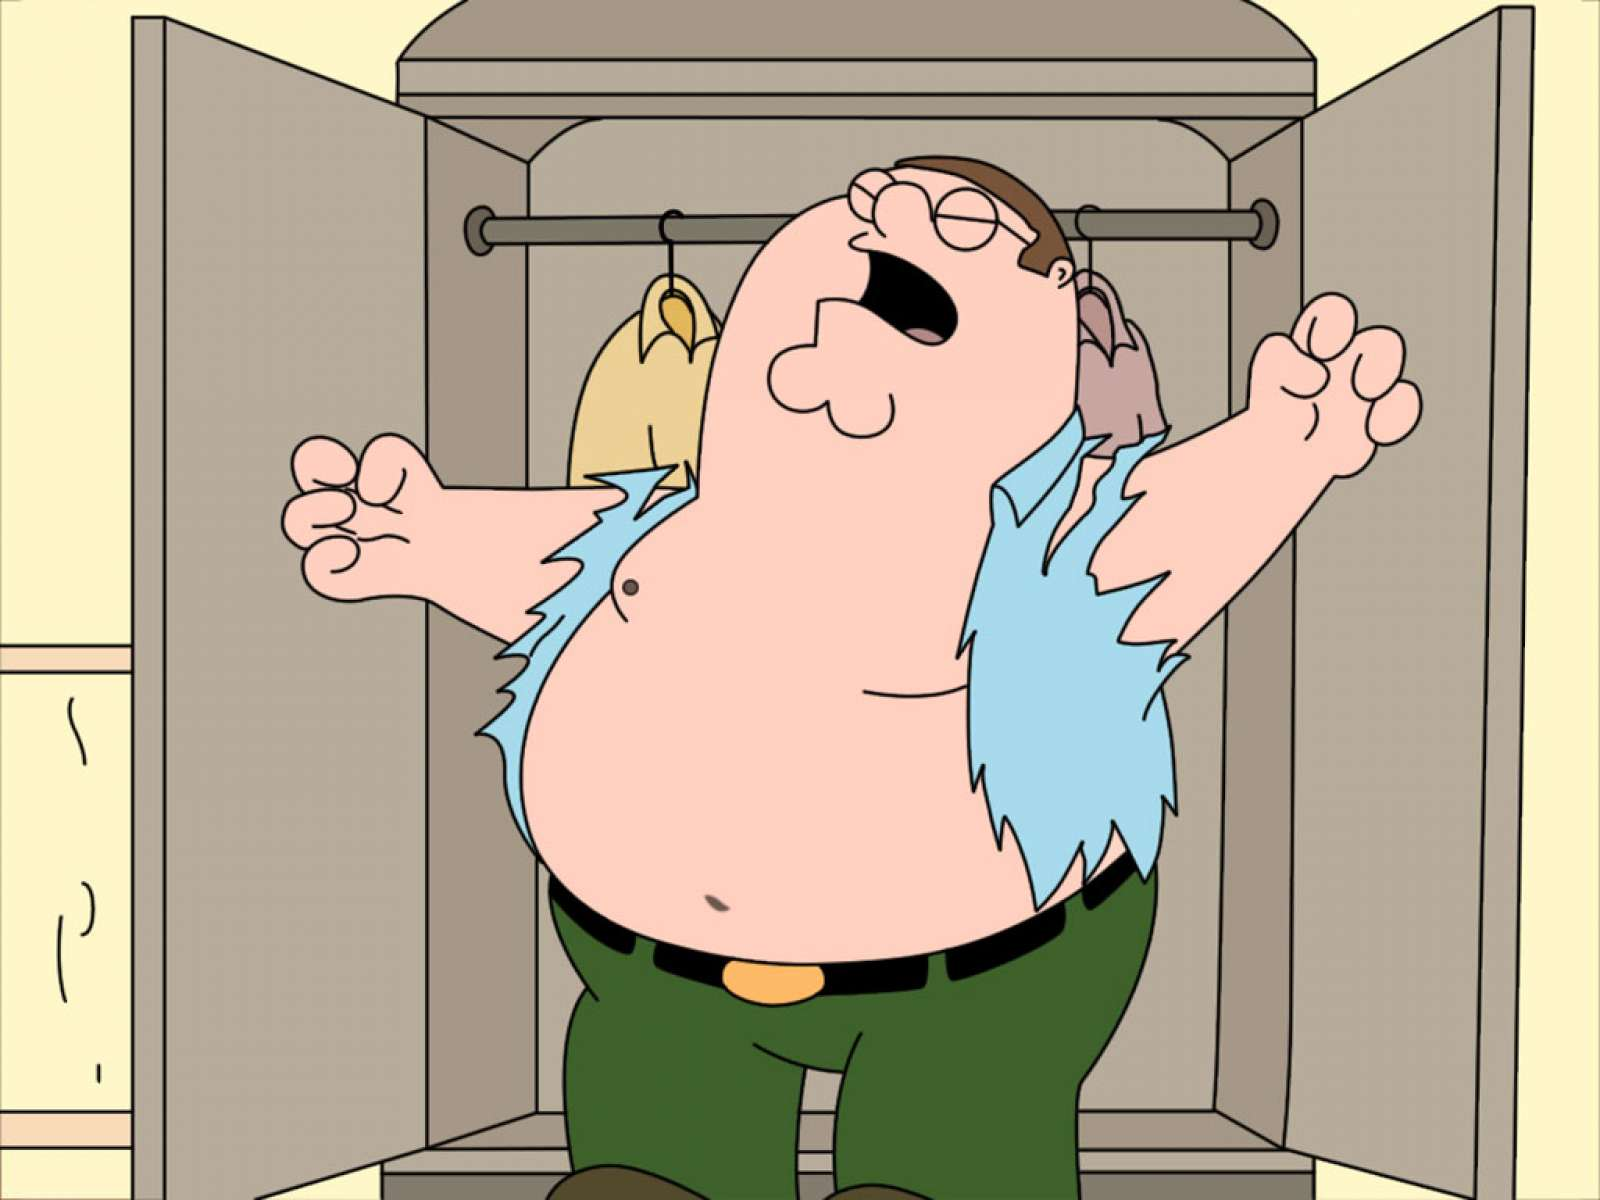 peter griffin images peter griffin hd wallpaper and